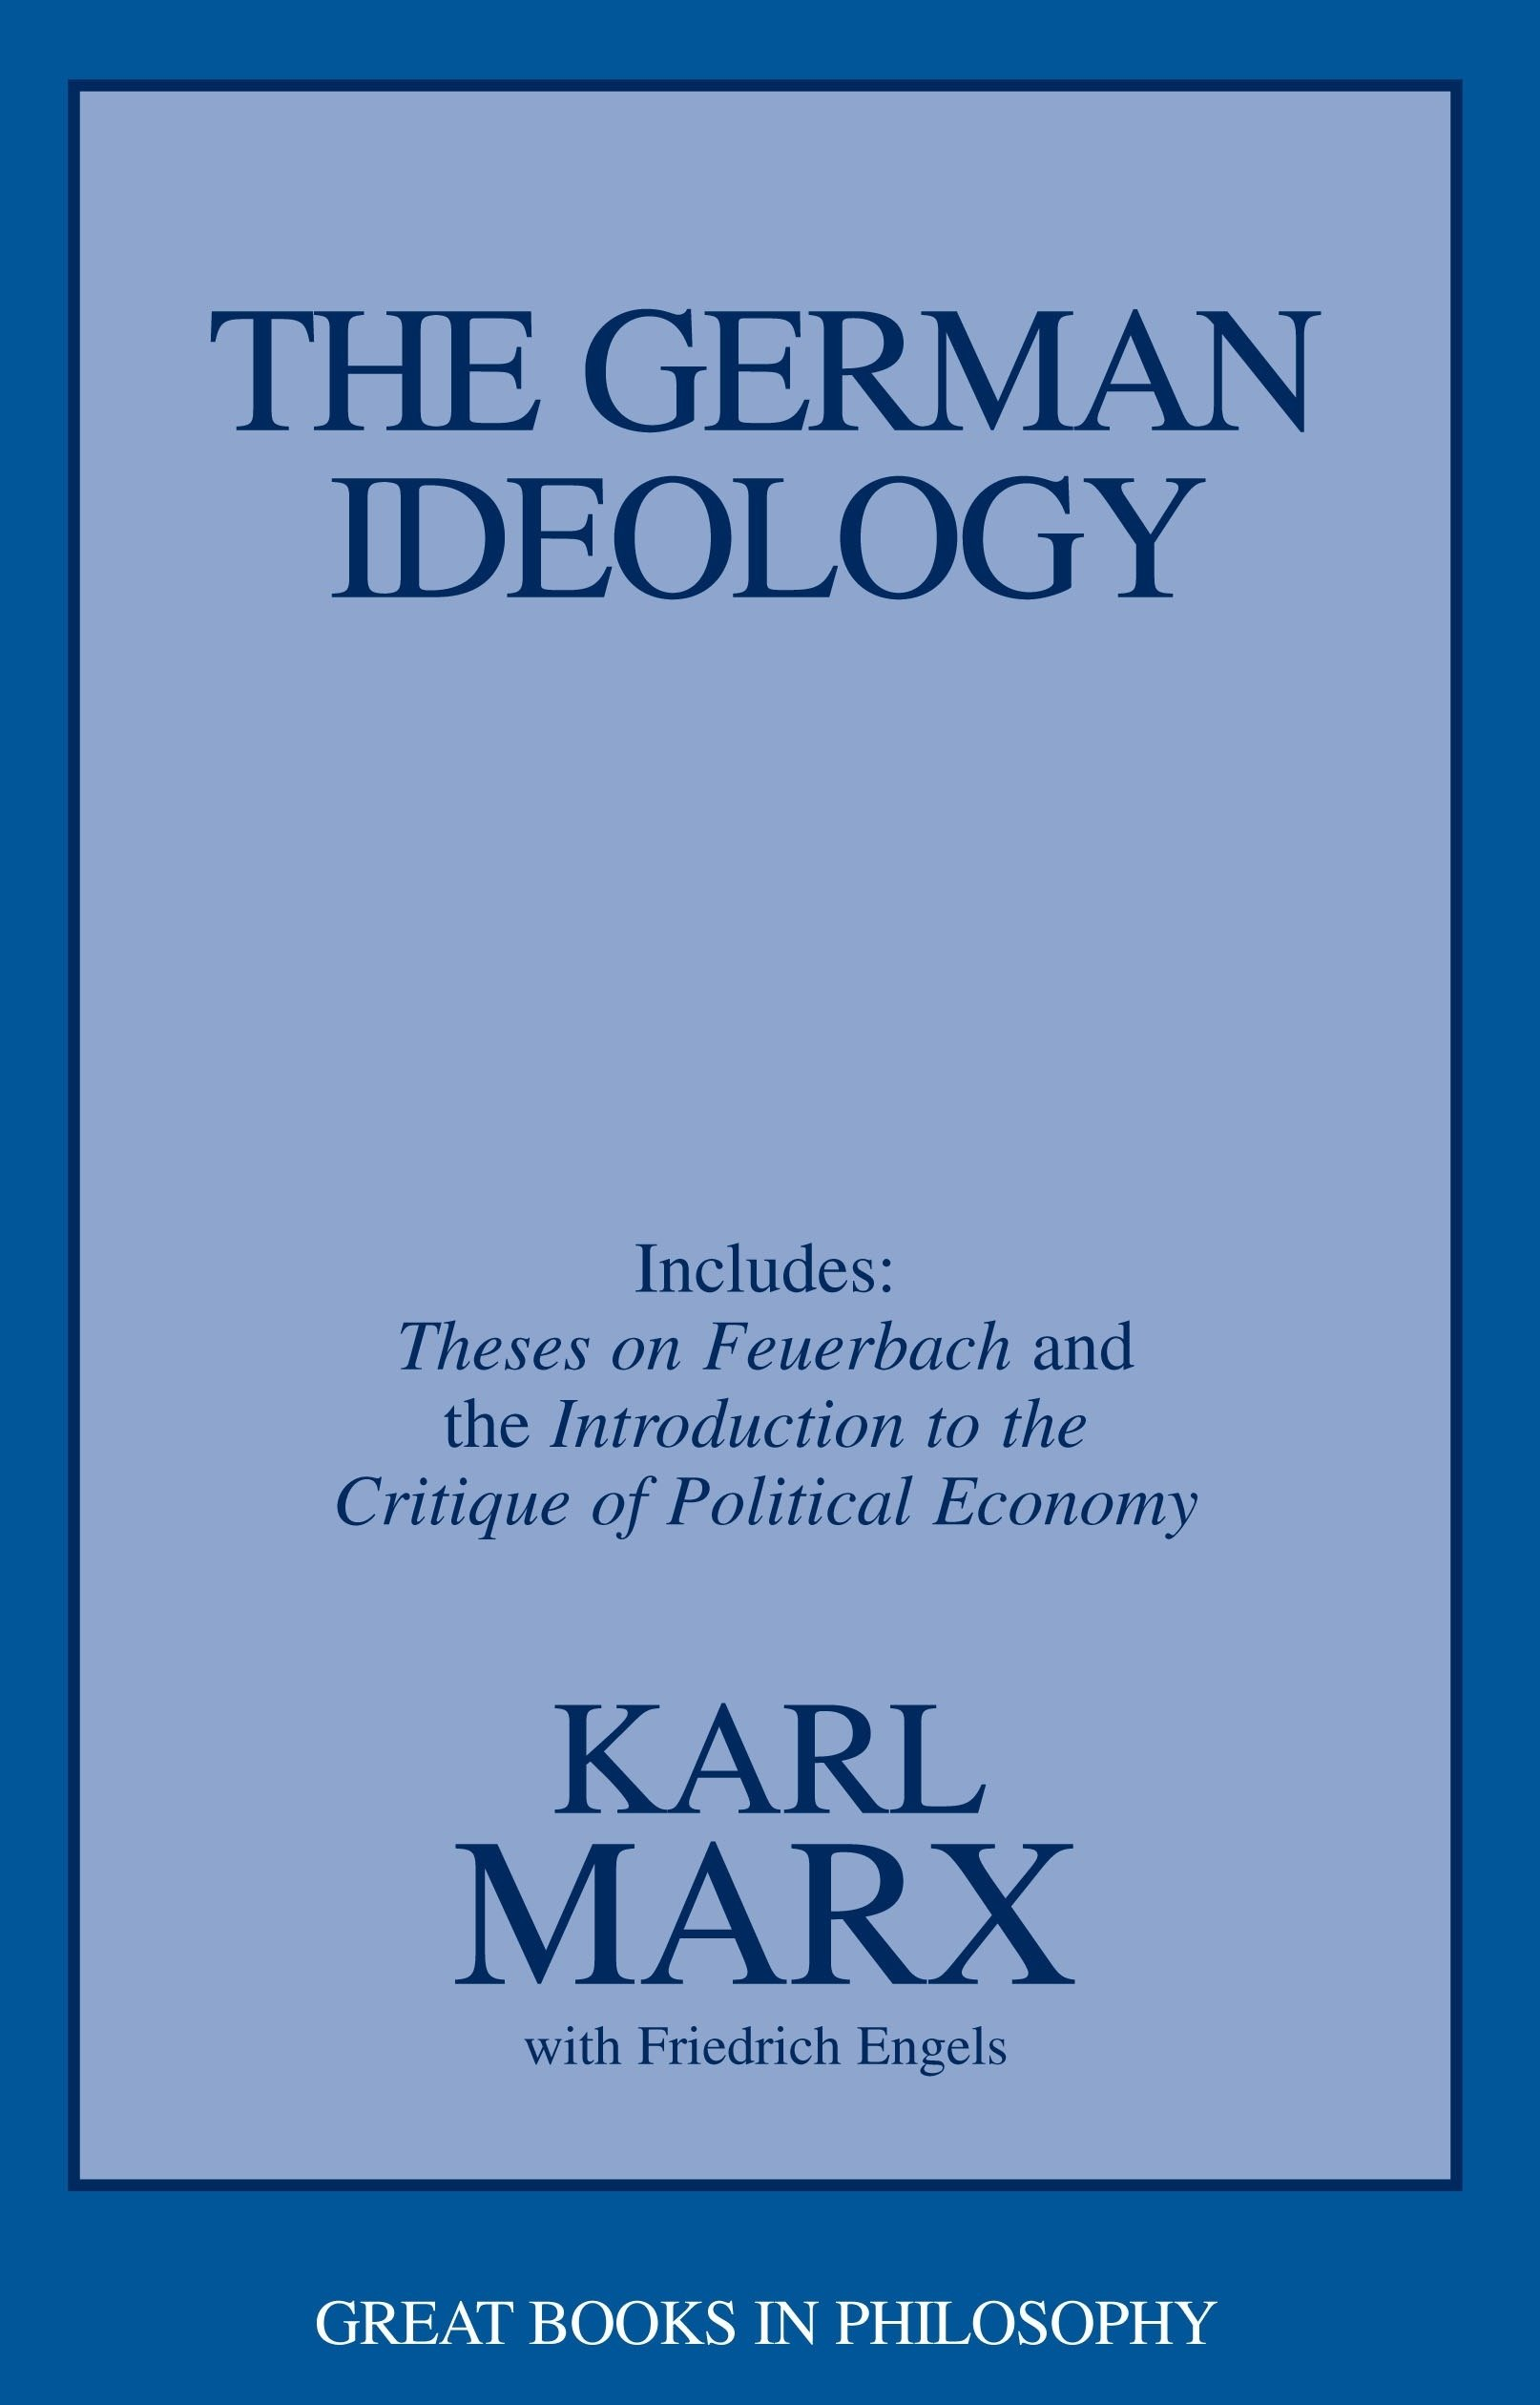 the german ideology including theses on feuerbach great books in  the german ideology including theses on feuerbach great books in philosophy karl marx friedrich engels 9781573922586 com books